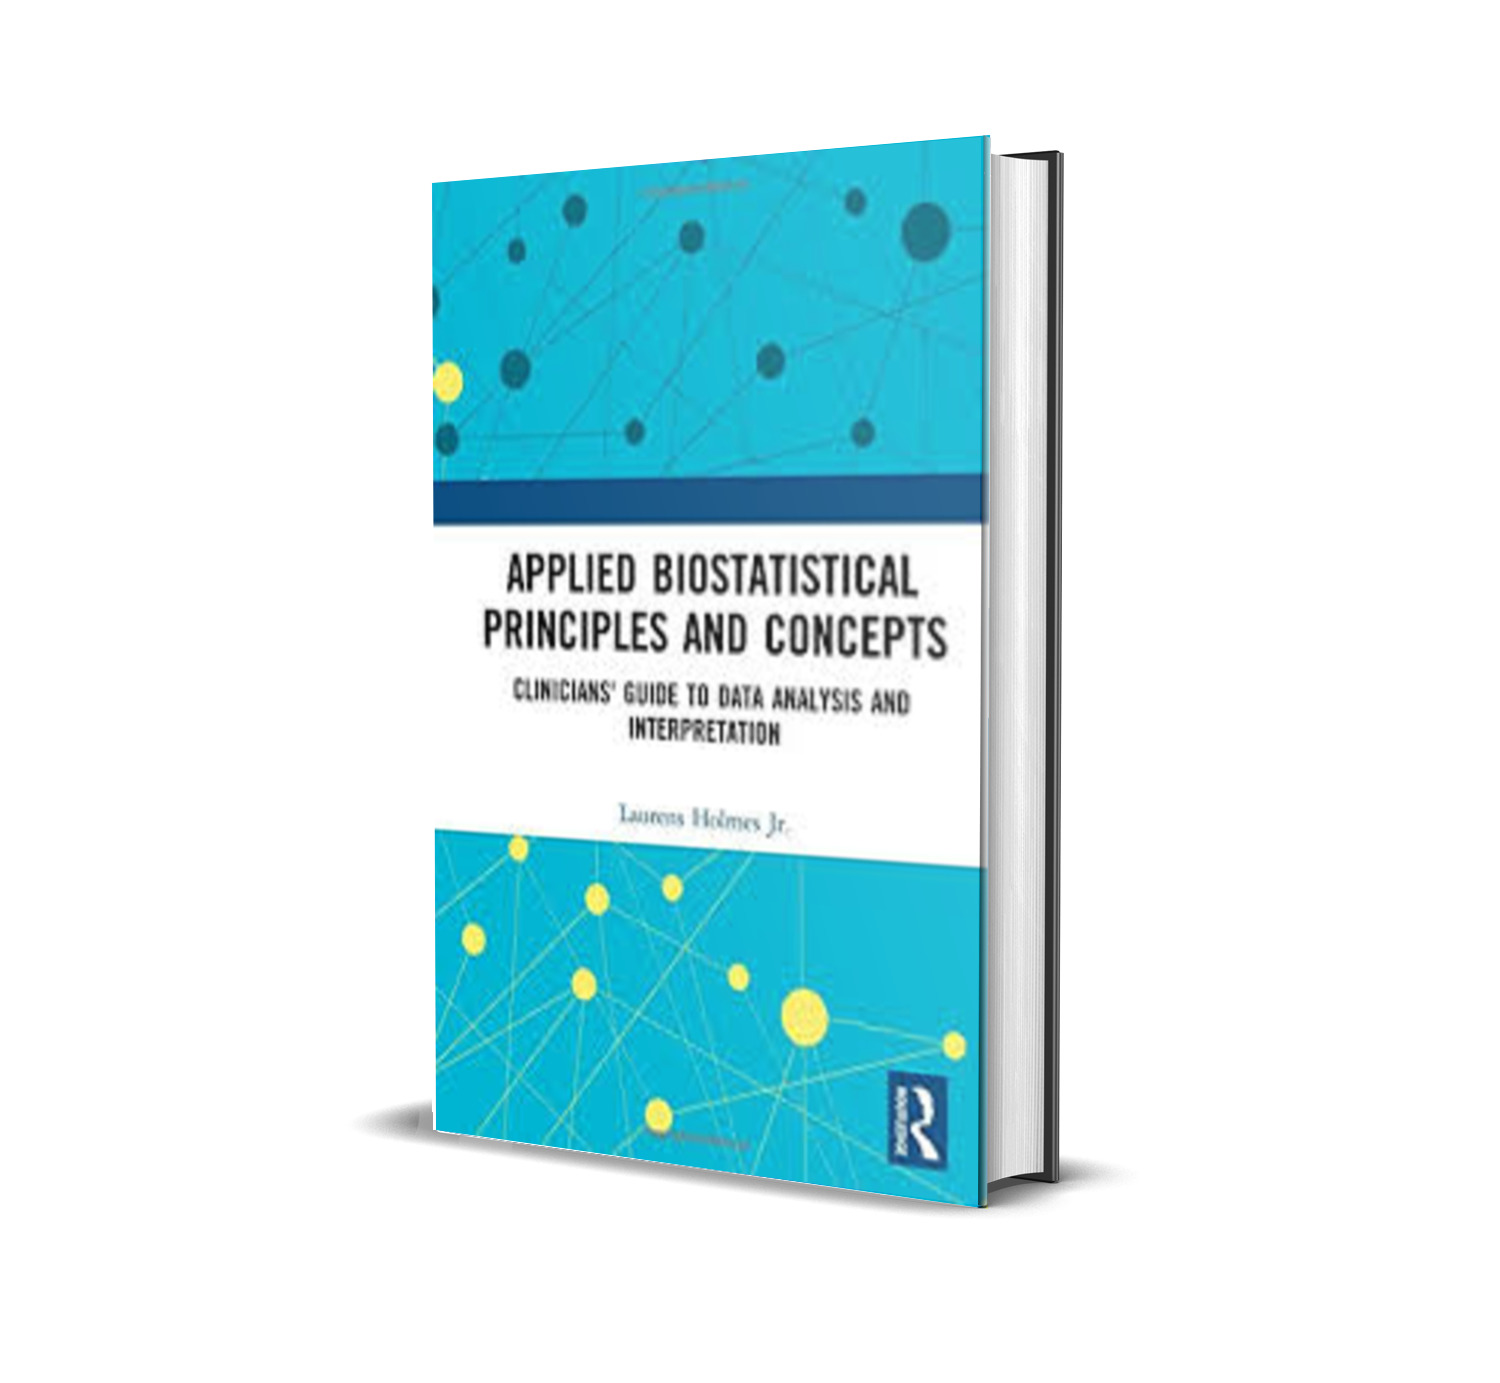 Applied biostatistical principles and concepts:Clinicians' guide to data analyisis and interpretation